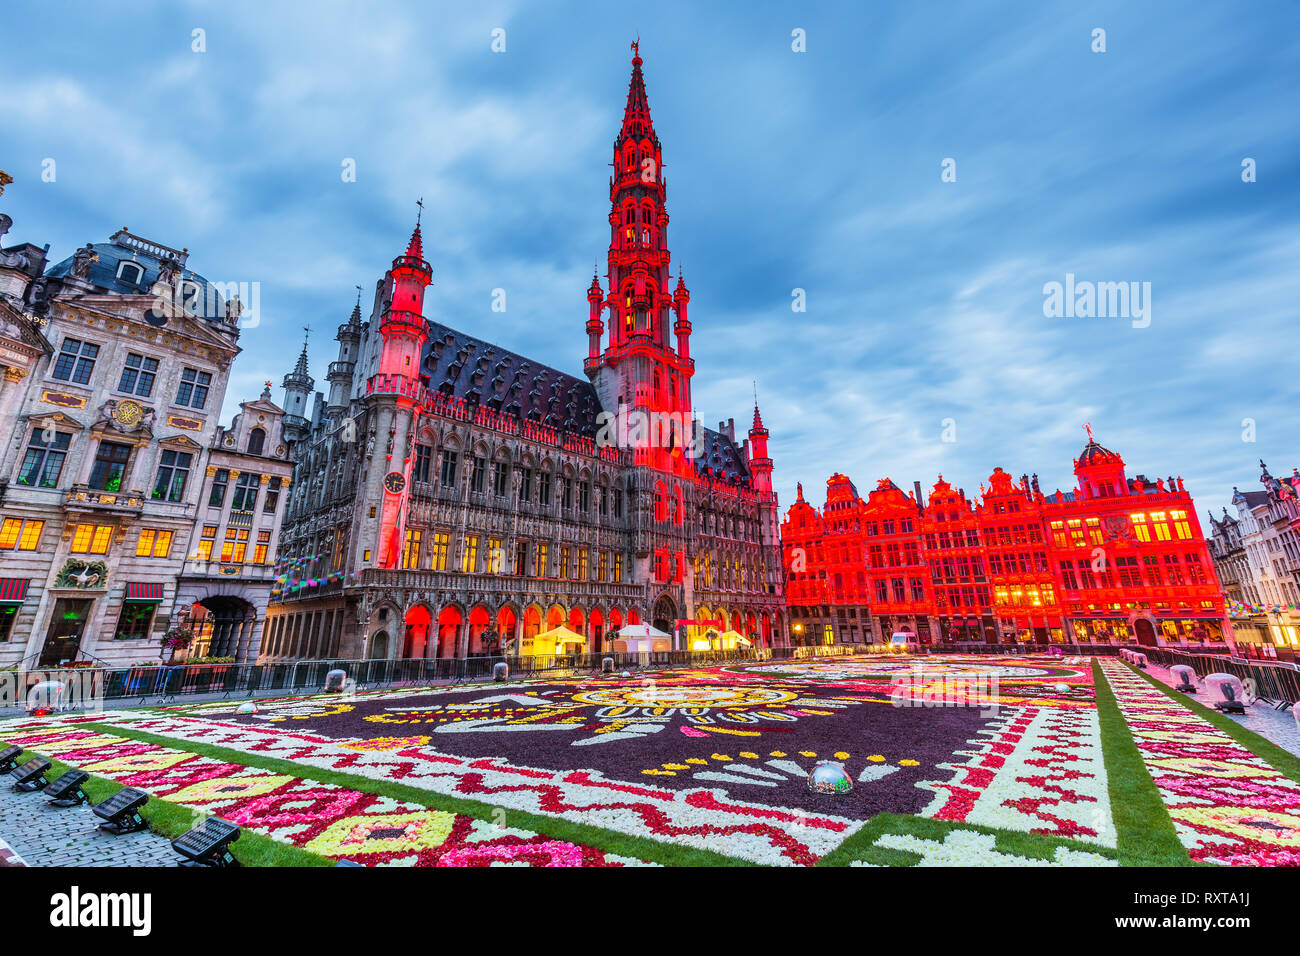 Brussels, Belgium. Grand Place during 2018 Flower Carpet festival. This year theme was Mexico. - Stock Image